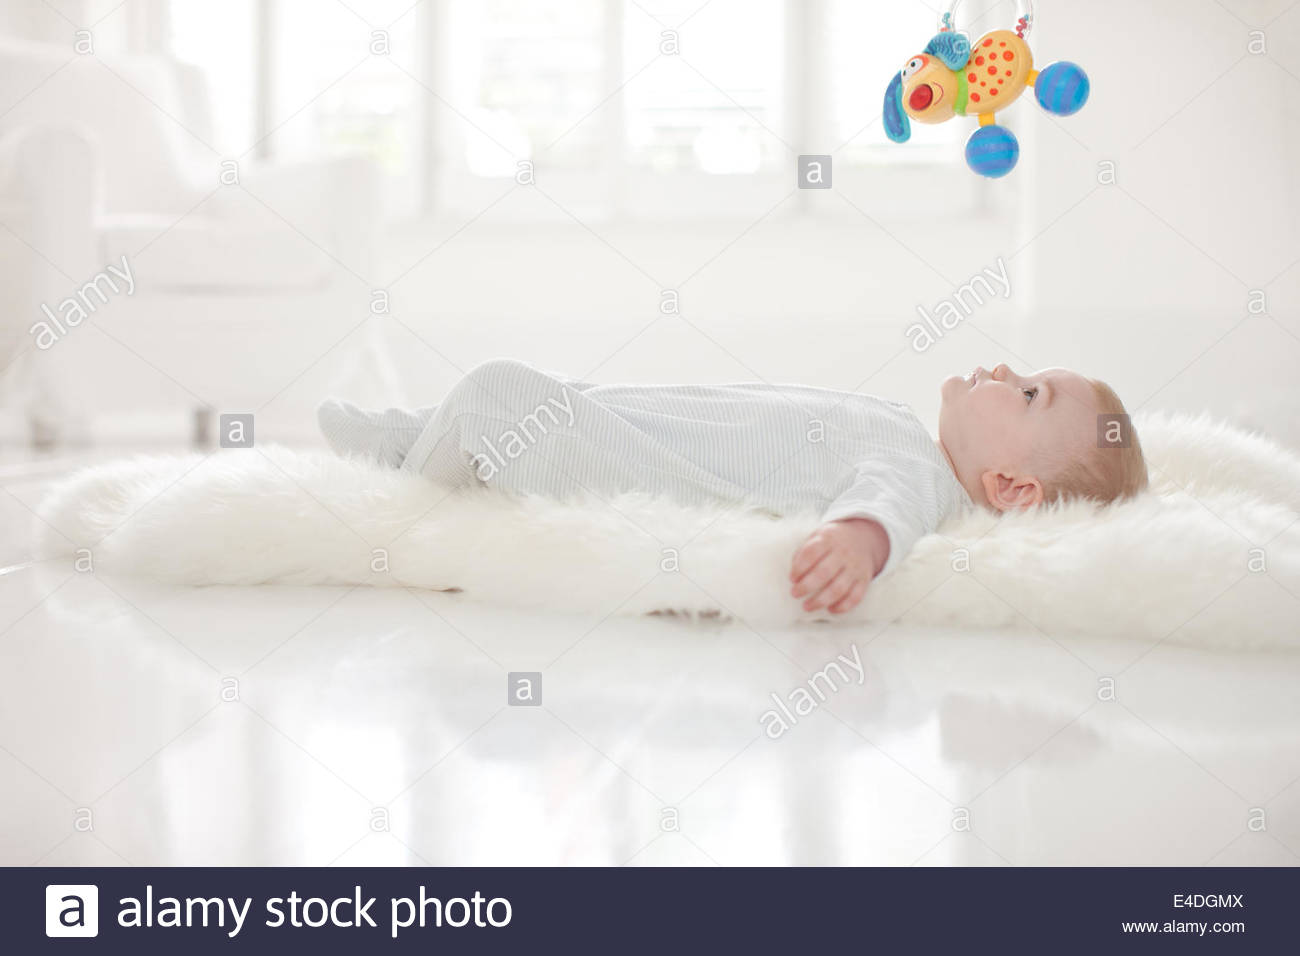 Baby on rug  for hanging toy overhead - Stock Image